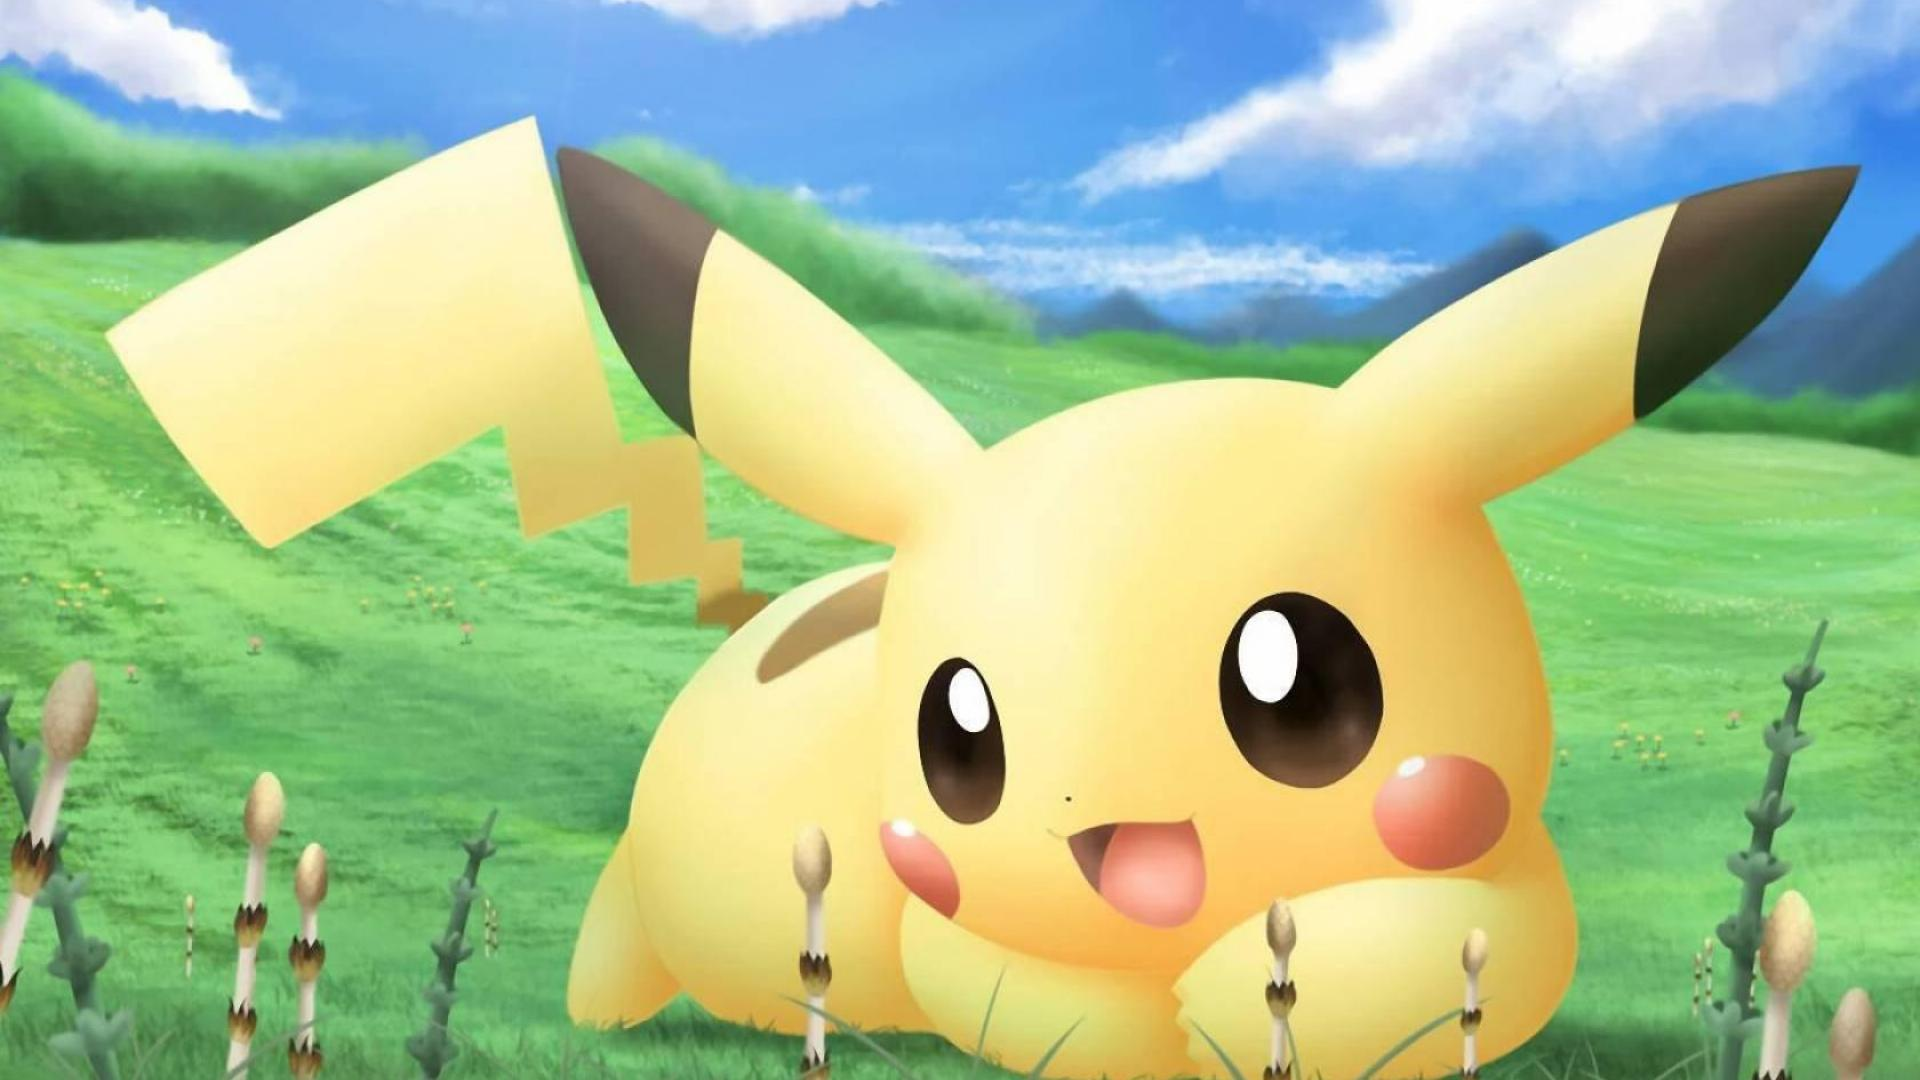 Pikachu   97493   High Quality and Resolution Wallpapers on 1920x1080